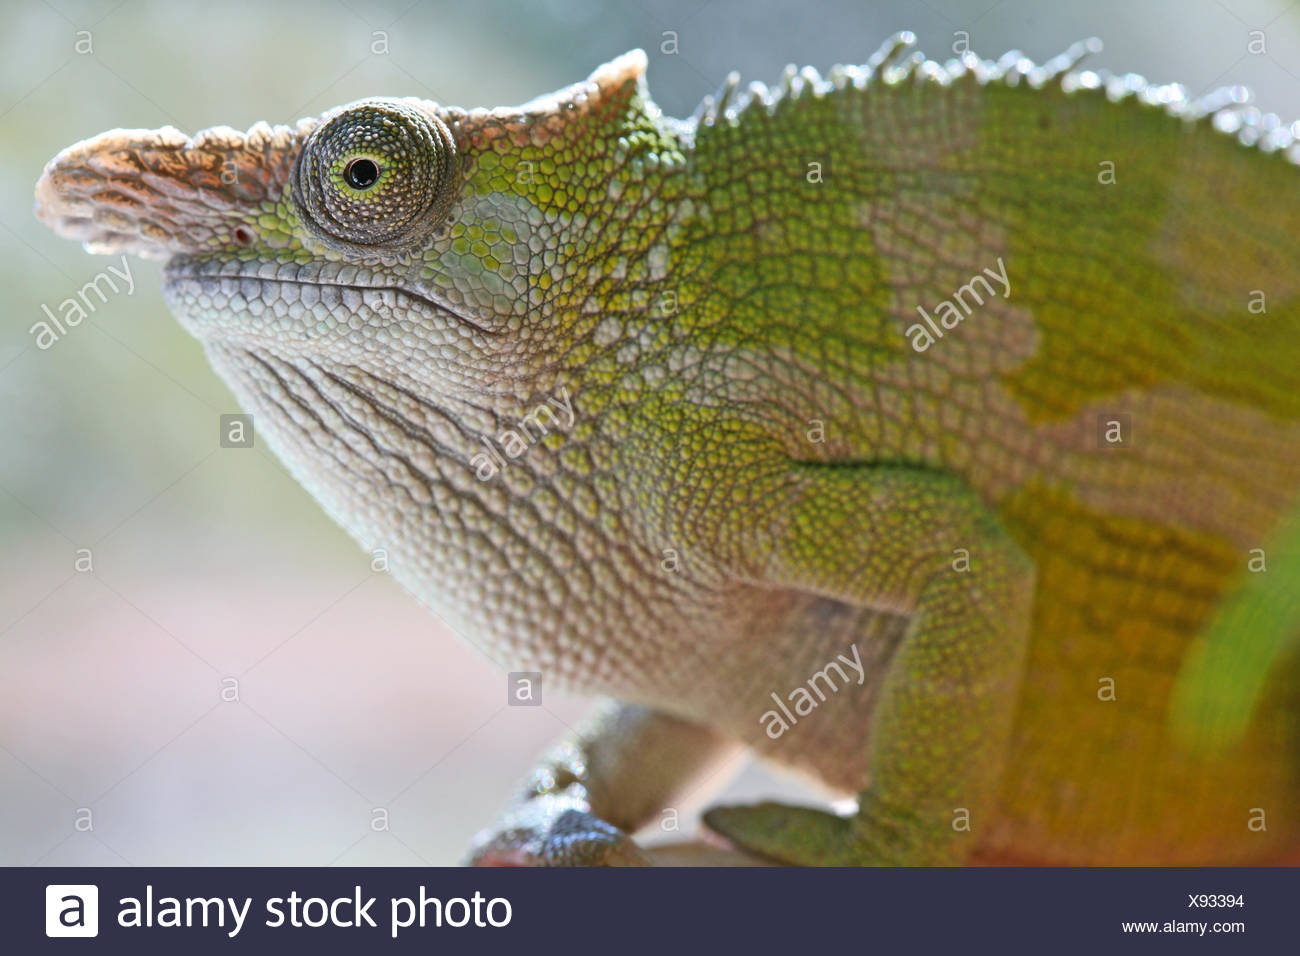 Fischers chameleon stock photos fischers chameleon stock images colour green eye organ camouflage reptiles chameleon adaptation colour green stock image thecheapjerseys Choice Image